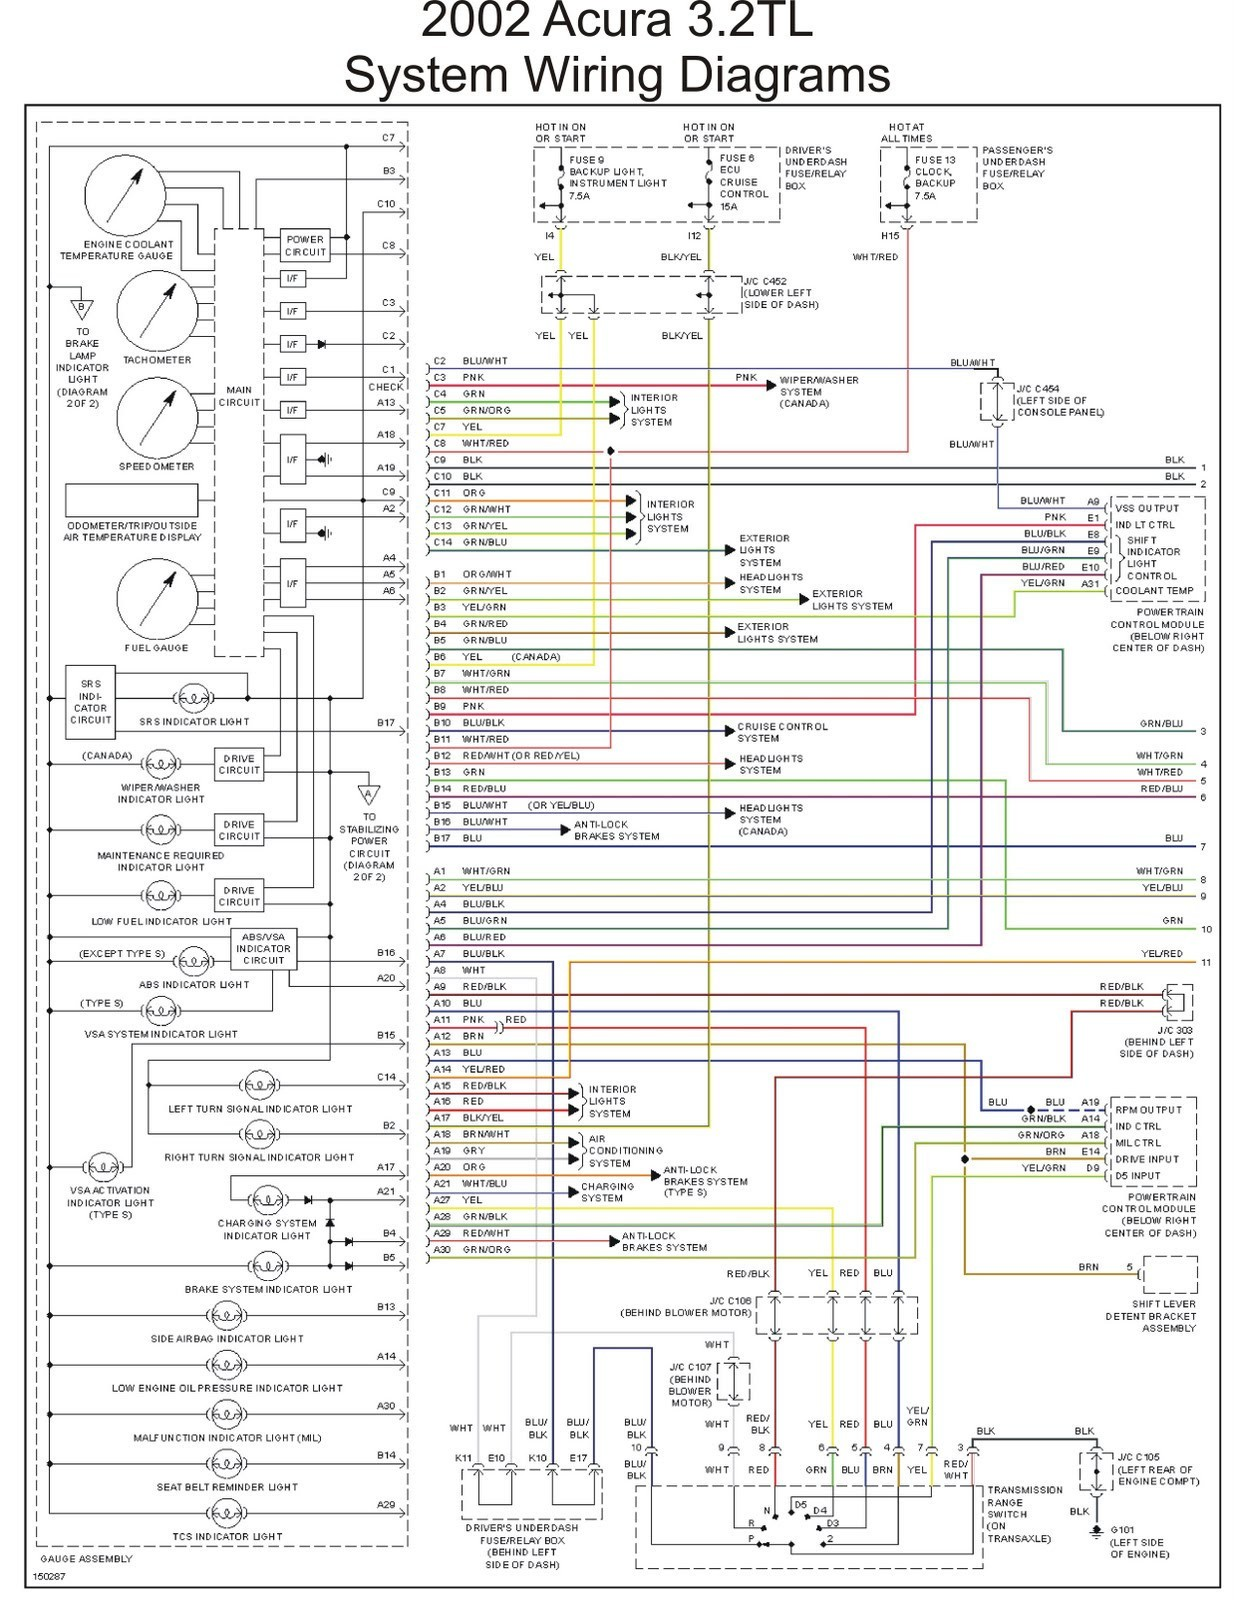 [SCHEMATICS_4FR]  CK_3792] Acura Tl Stereo Wiring Diagram Together With 05 Acura Rl Radio  Wiring   2008 Acura Tl Wiring Diagram      Adit Joni Eatte Mohammedshrine Librar Wiring 101